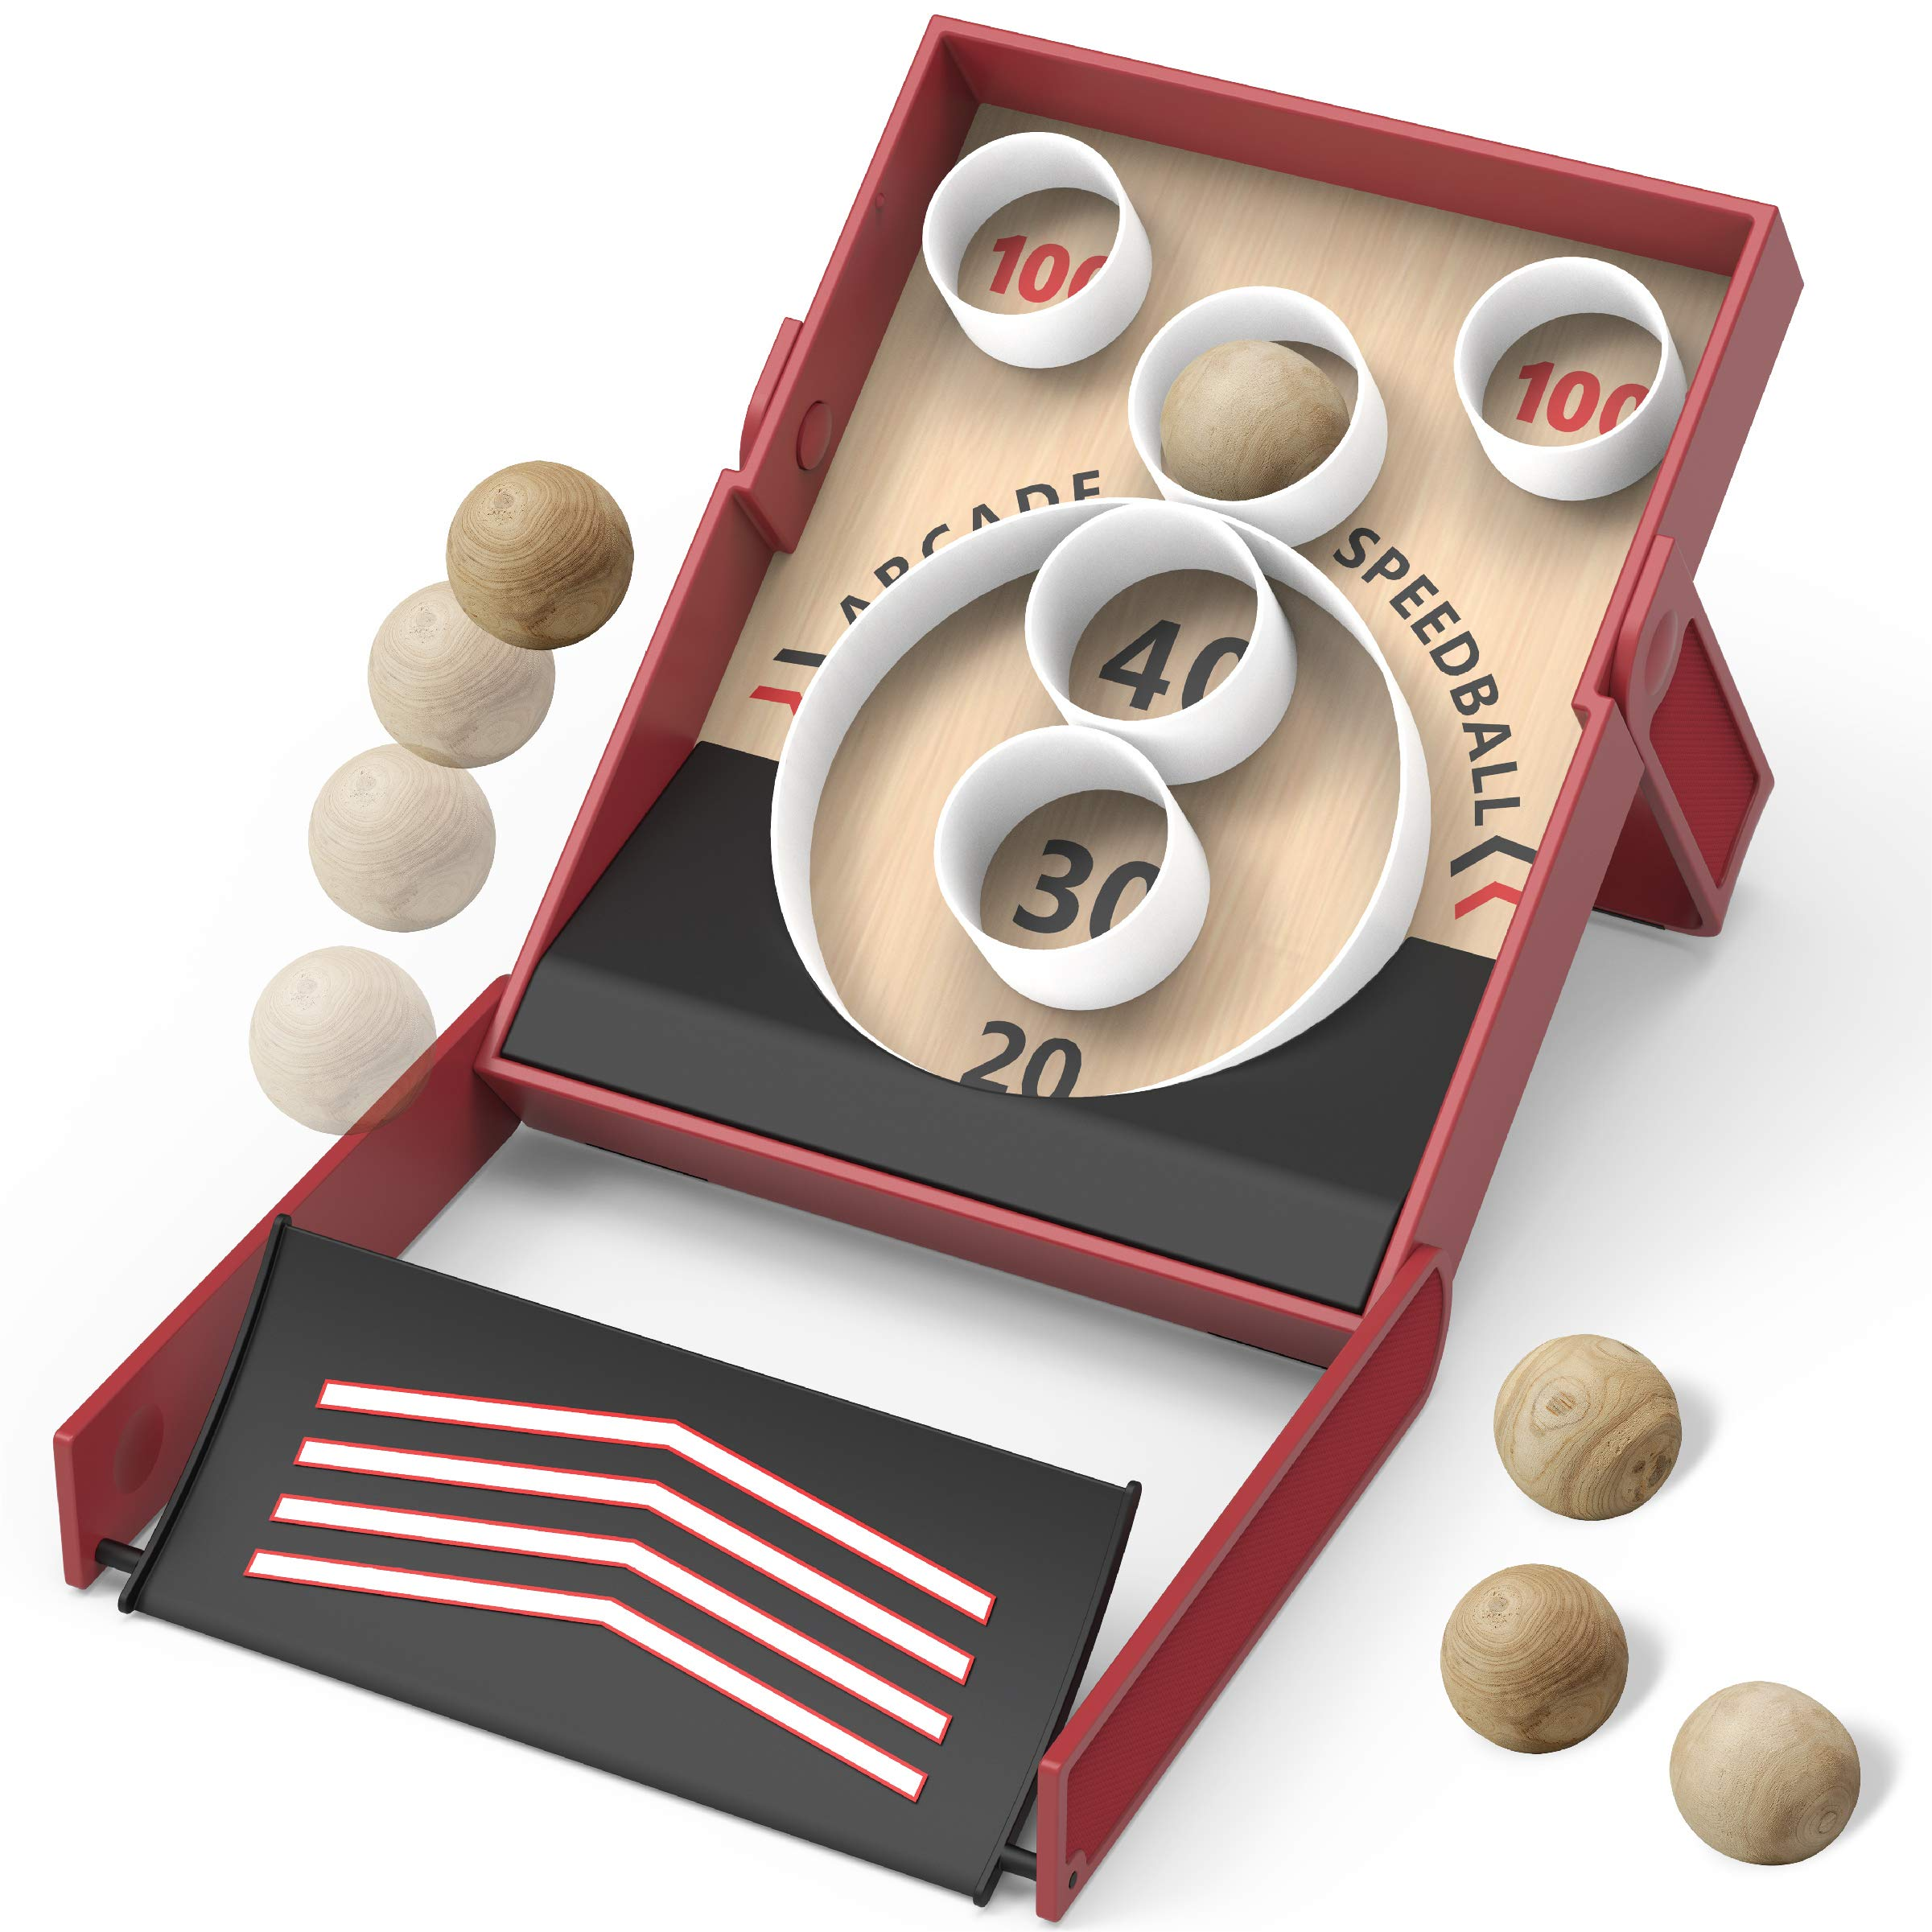 Sharper Image Collapsible Retro-Style Speedball Game, Indoor and Outdoor Arcade Toy, Roll The Ball and Hit The Target, Easy Setup, Includes Scorecards and 5 Wooden Balls, Fun Game for Kids and Adults by Sharper Image